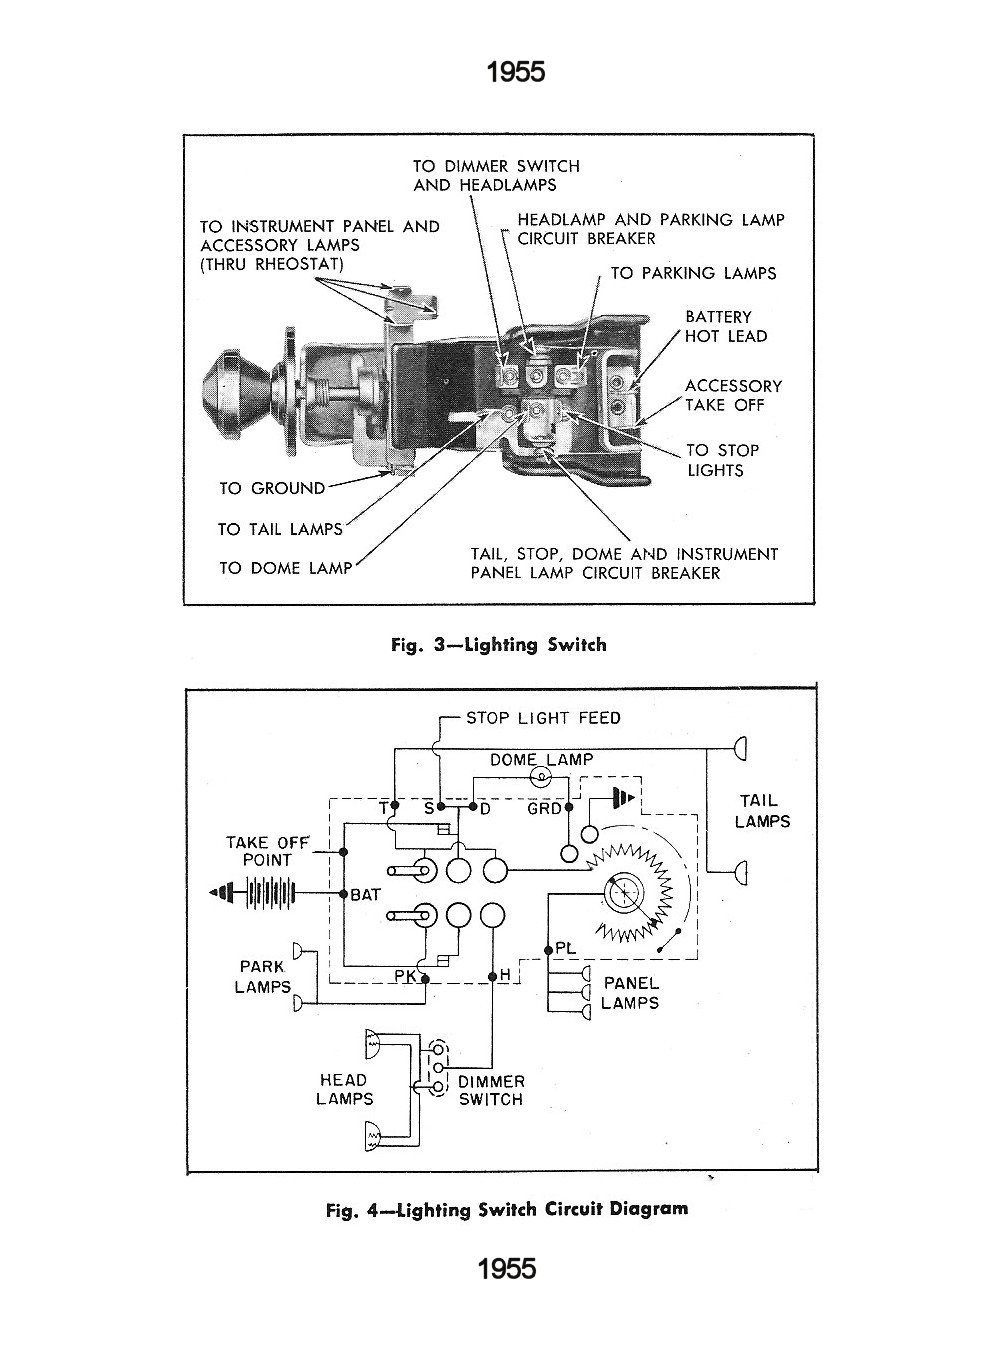 55csm1204a 1955 chevy wiring diagram 1955 pontiac wiring diagram \u2022 free chevrolet headlight switch wiring diagram at bayanpartner.co